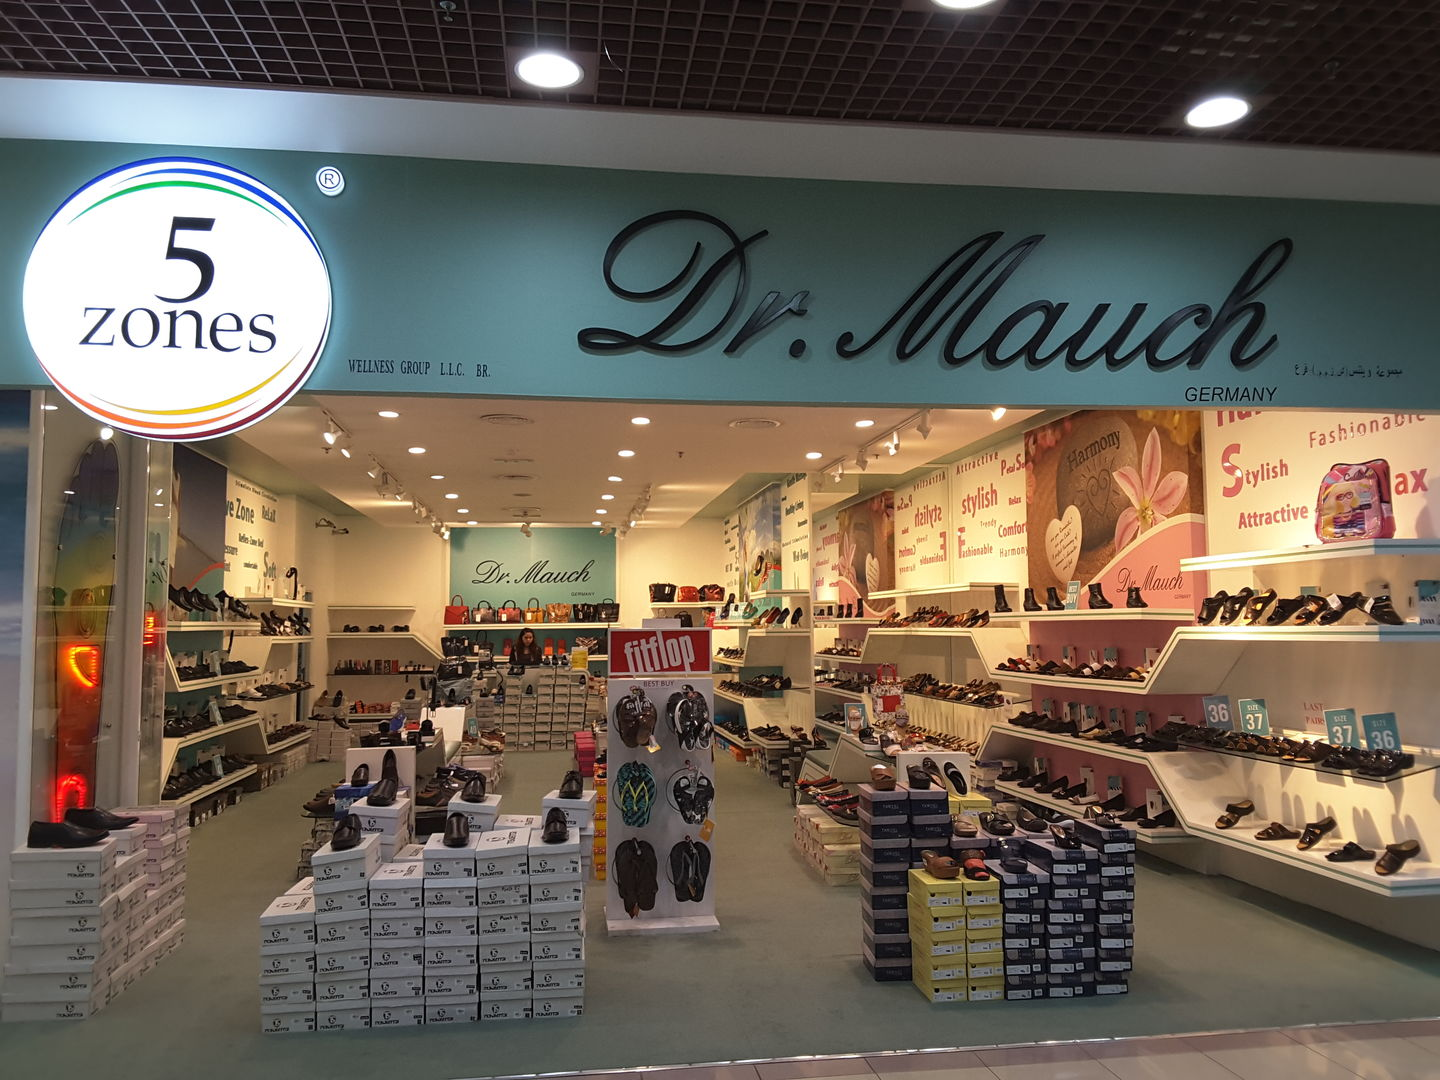 HiDubai-business-dr-mauch-shopping-footwear-oud-metha-dubai-2